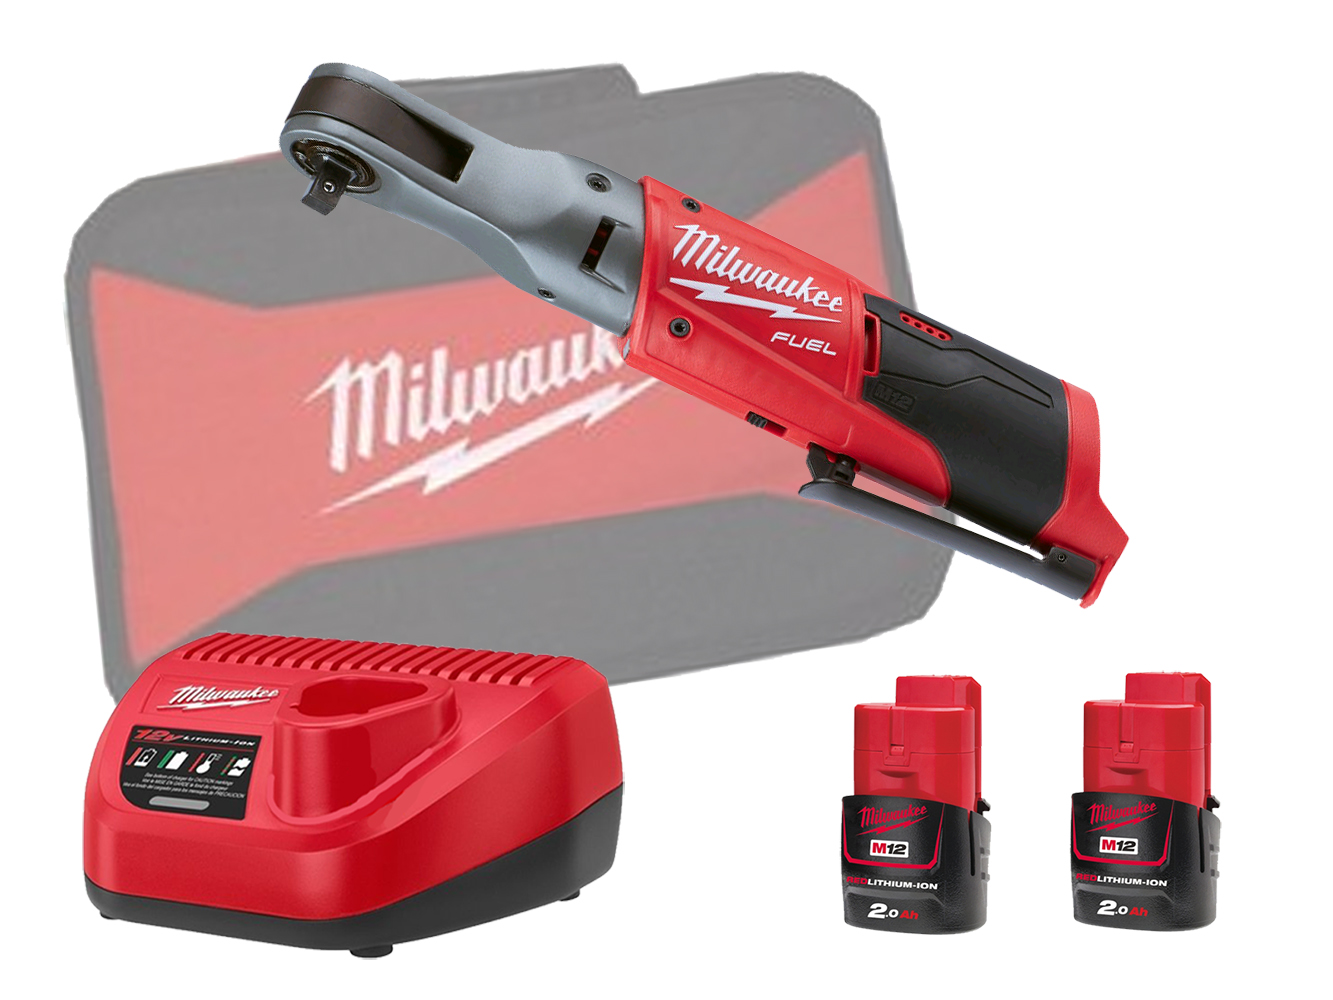 Milwaukee M12FIR38 12V Fuel Brushless 3/8In Impact Ratchet - 2.0Ah Pack